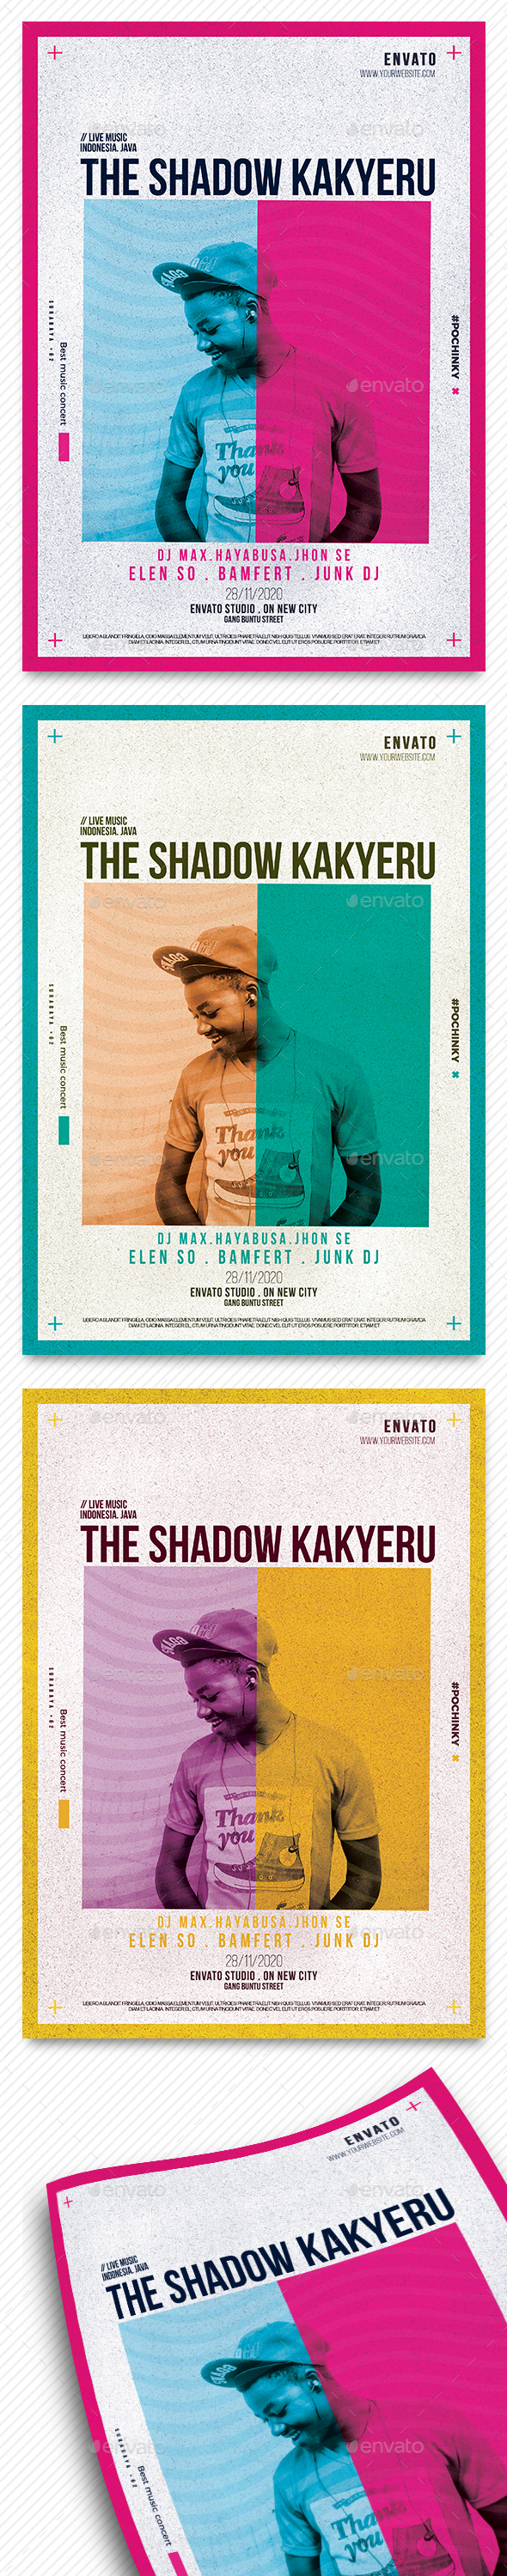 The Shadow Kakyeru Flyer - Concerts Events